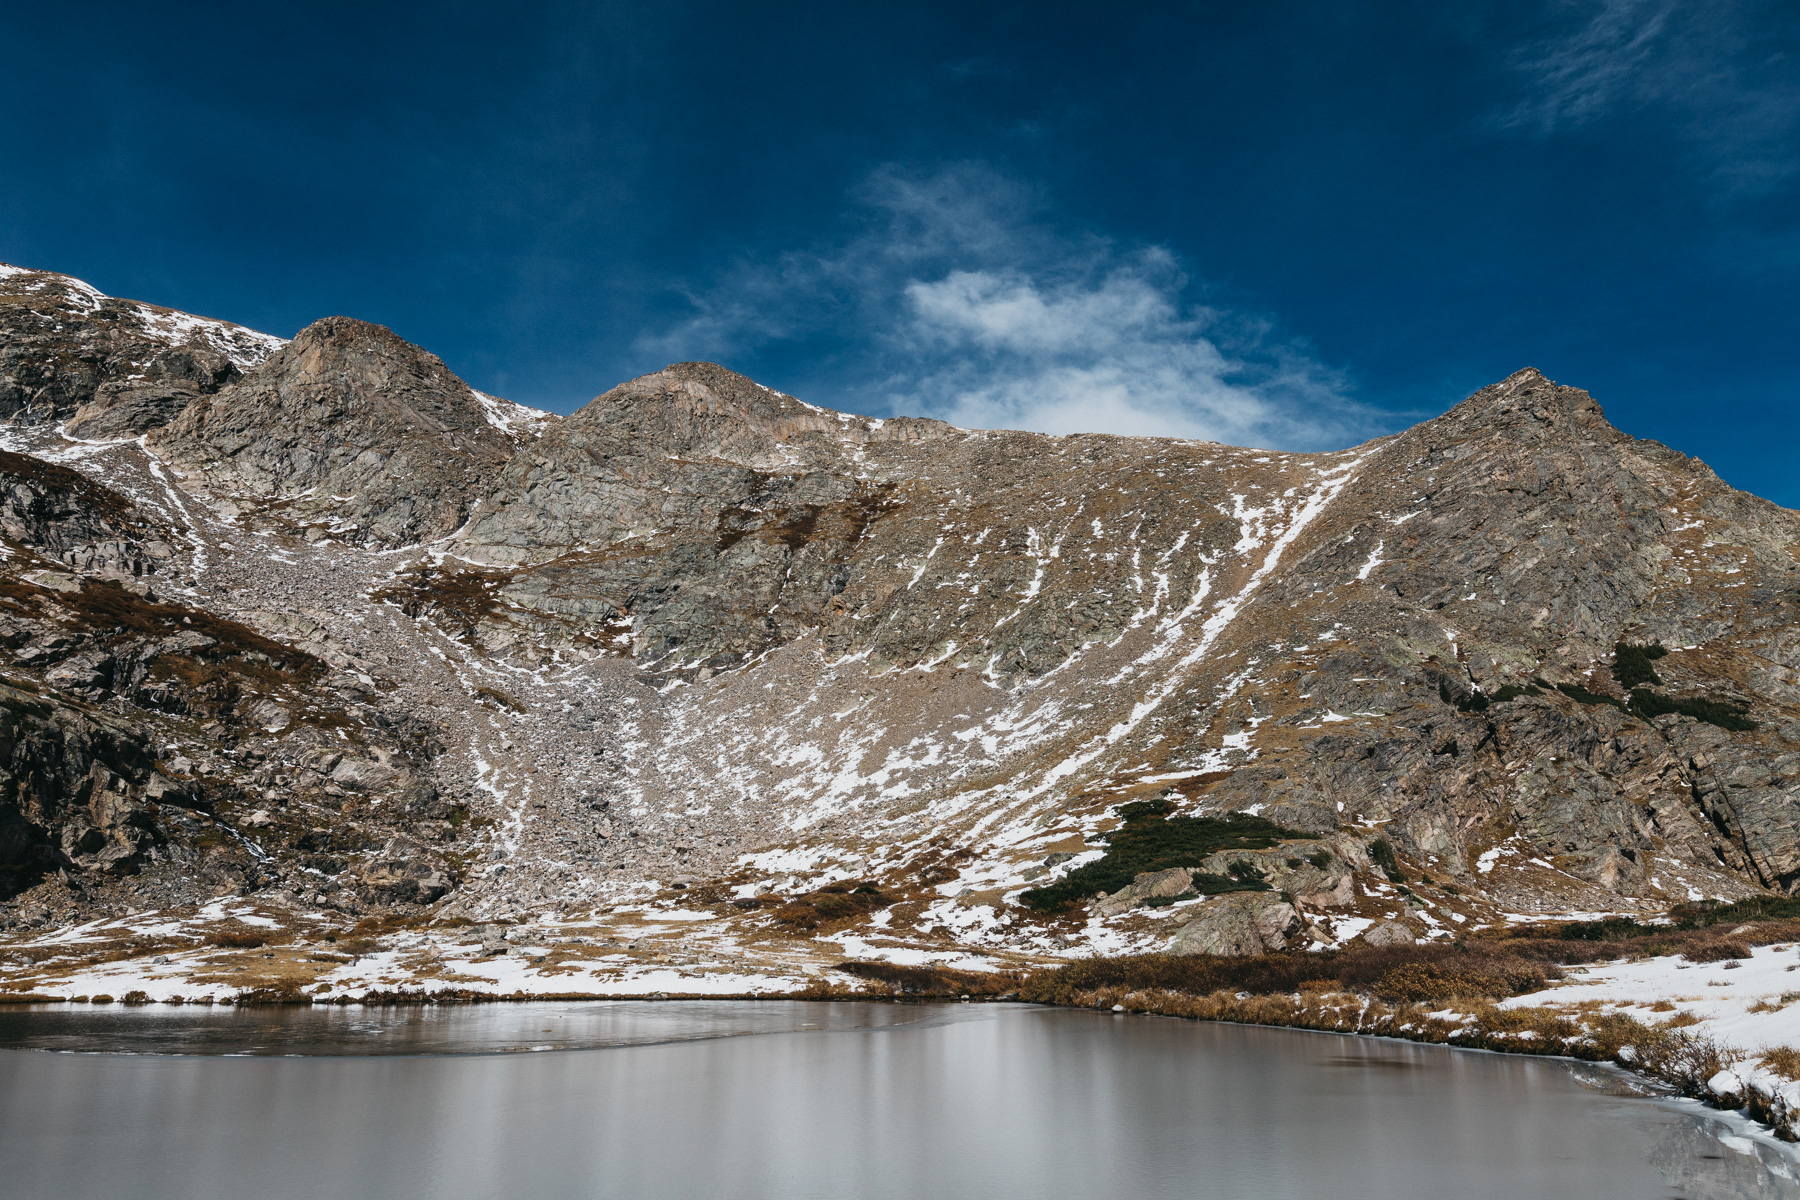 The 10 Best Hikes and Trails Near Denver | Loch Lomond, Idaho Springs